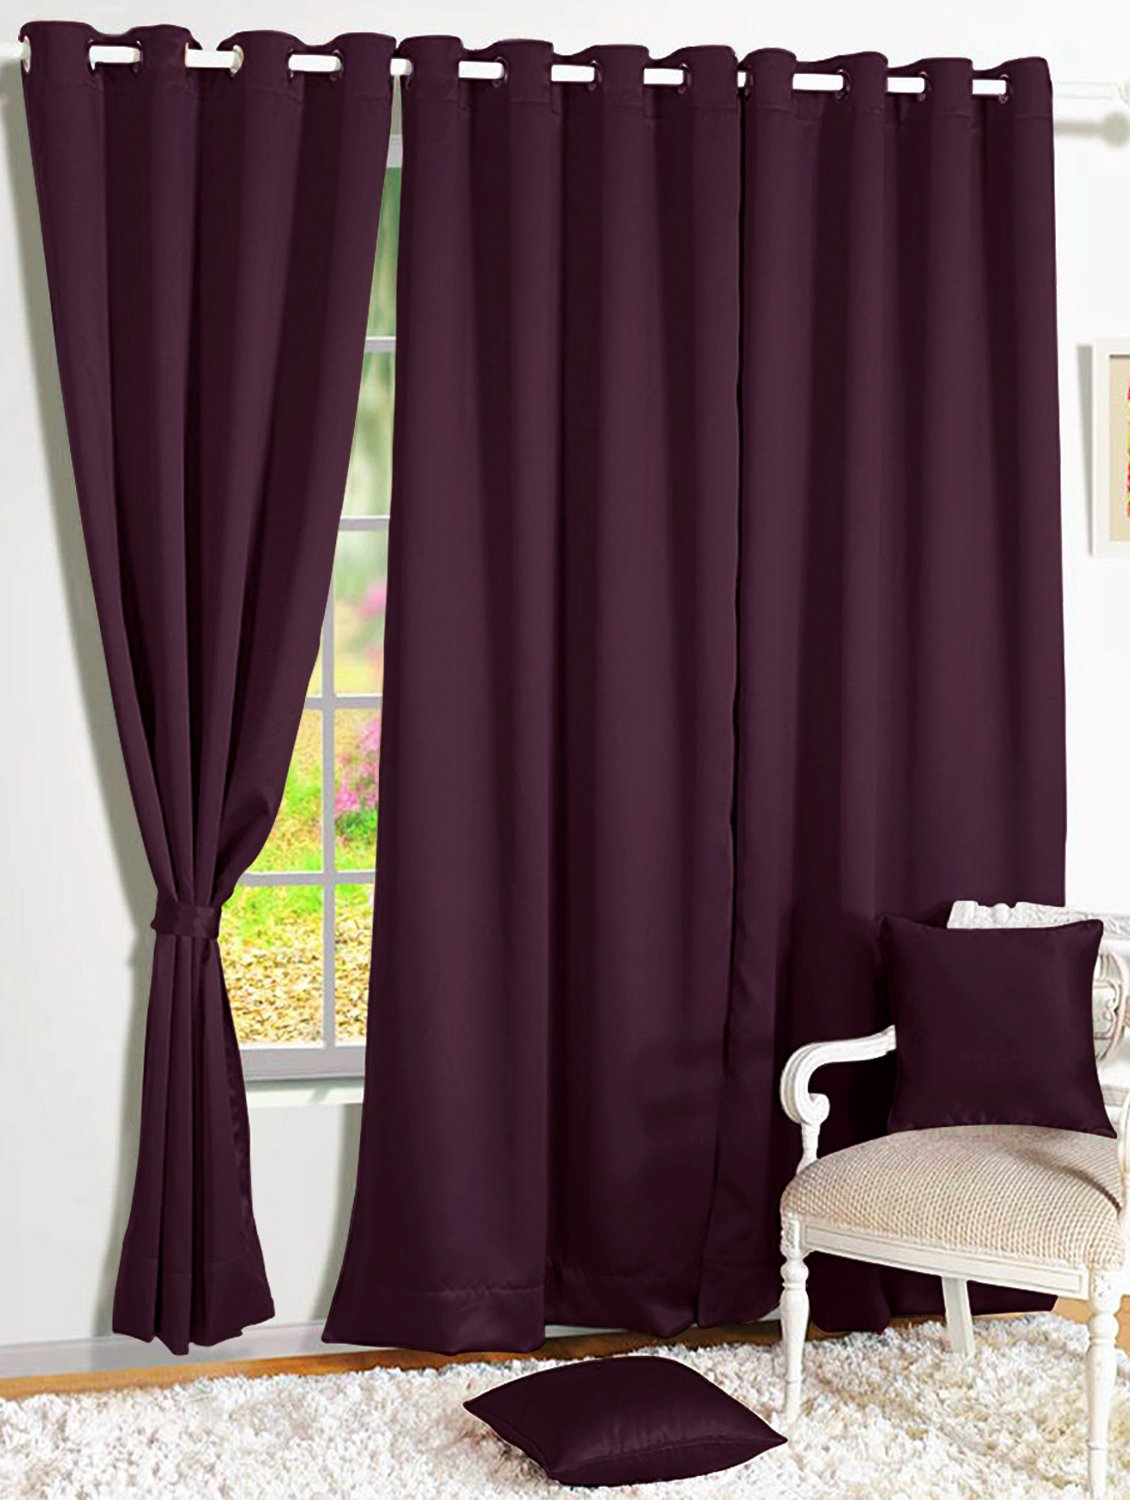 Story@Home Blackout Curtains